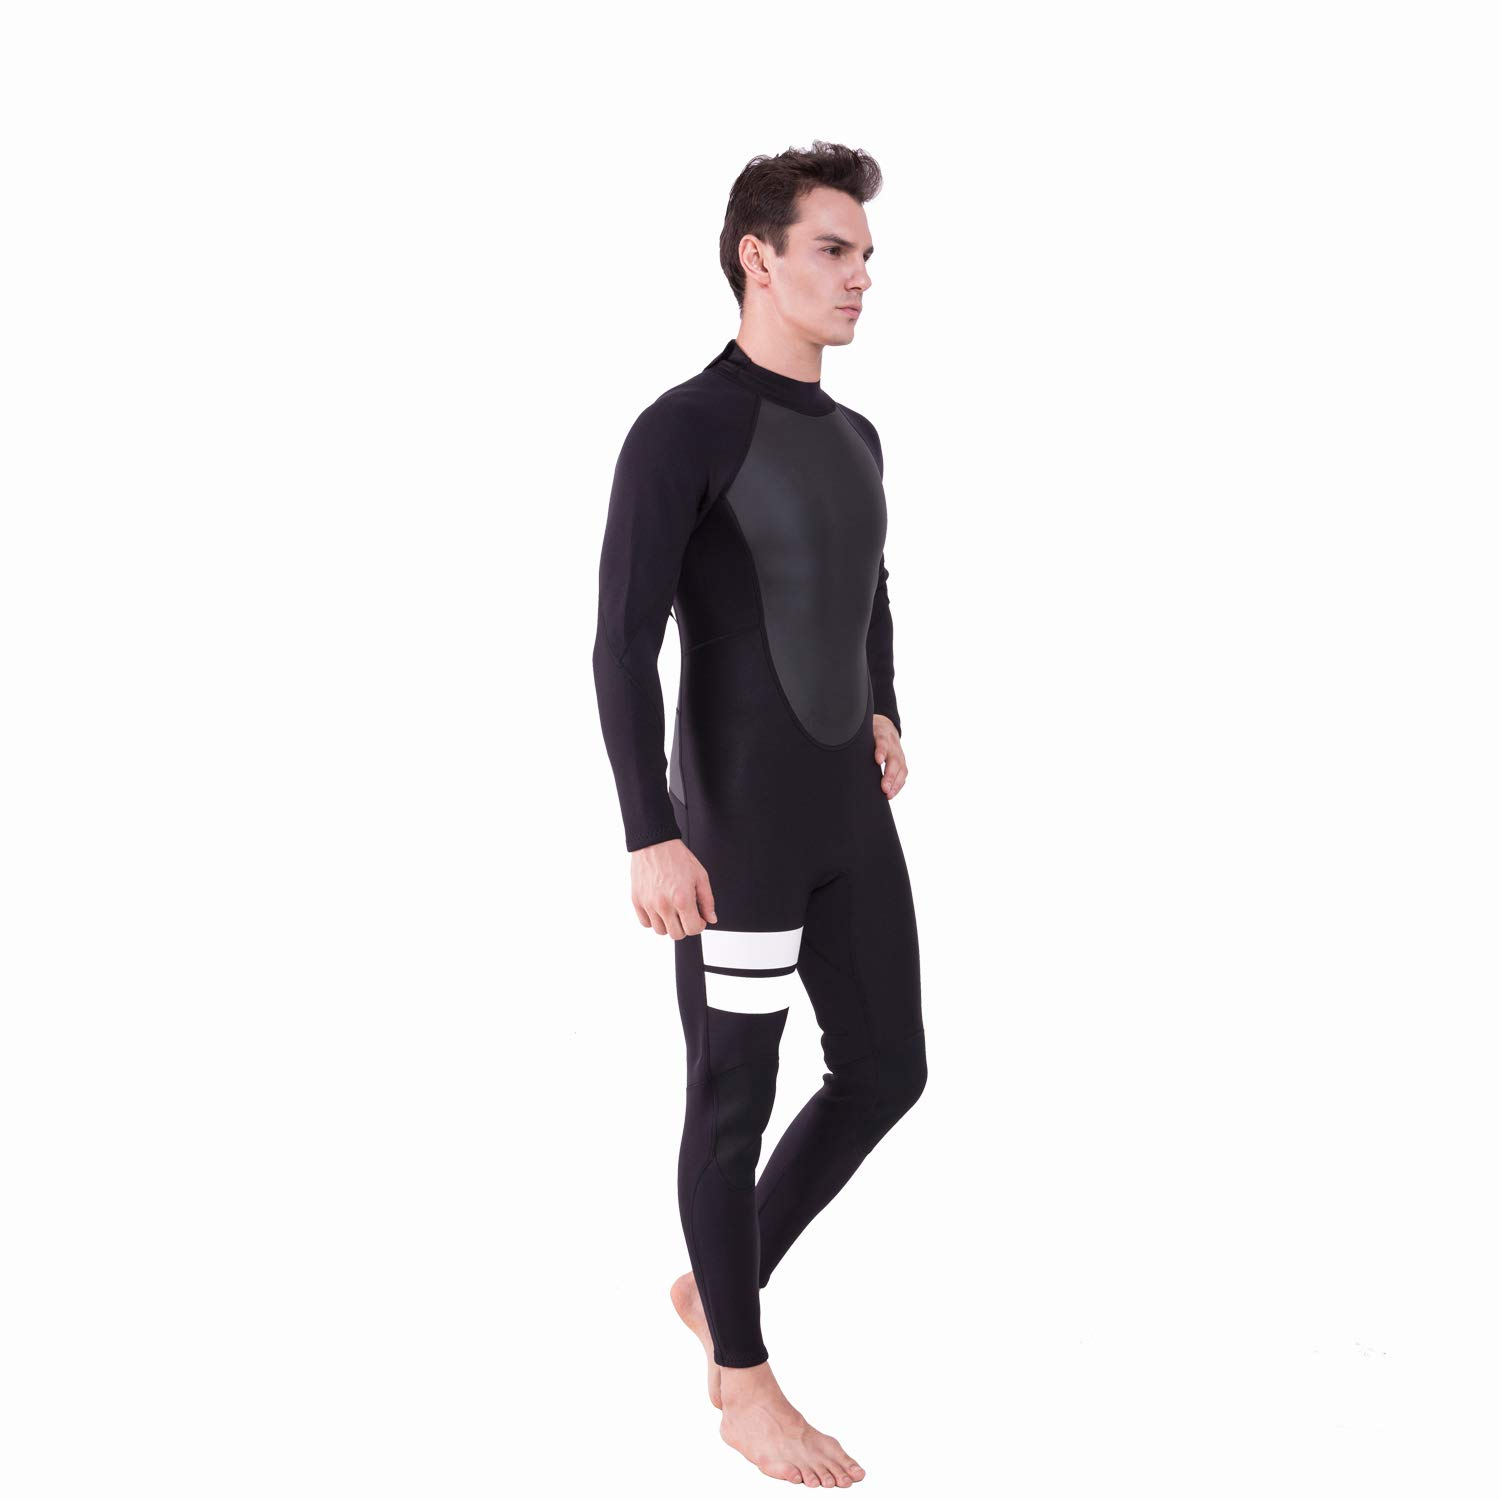 Realon Wetsuit Men Full 2mm Surfing Suit Diving Snorkeling Swimming Jumpsuit (2mm Black, Medium) by Realon (Image #6)